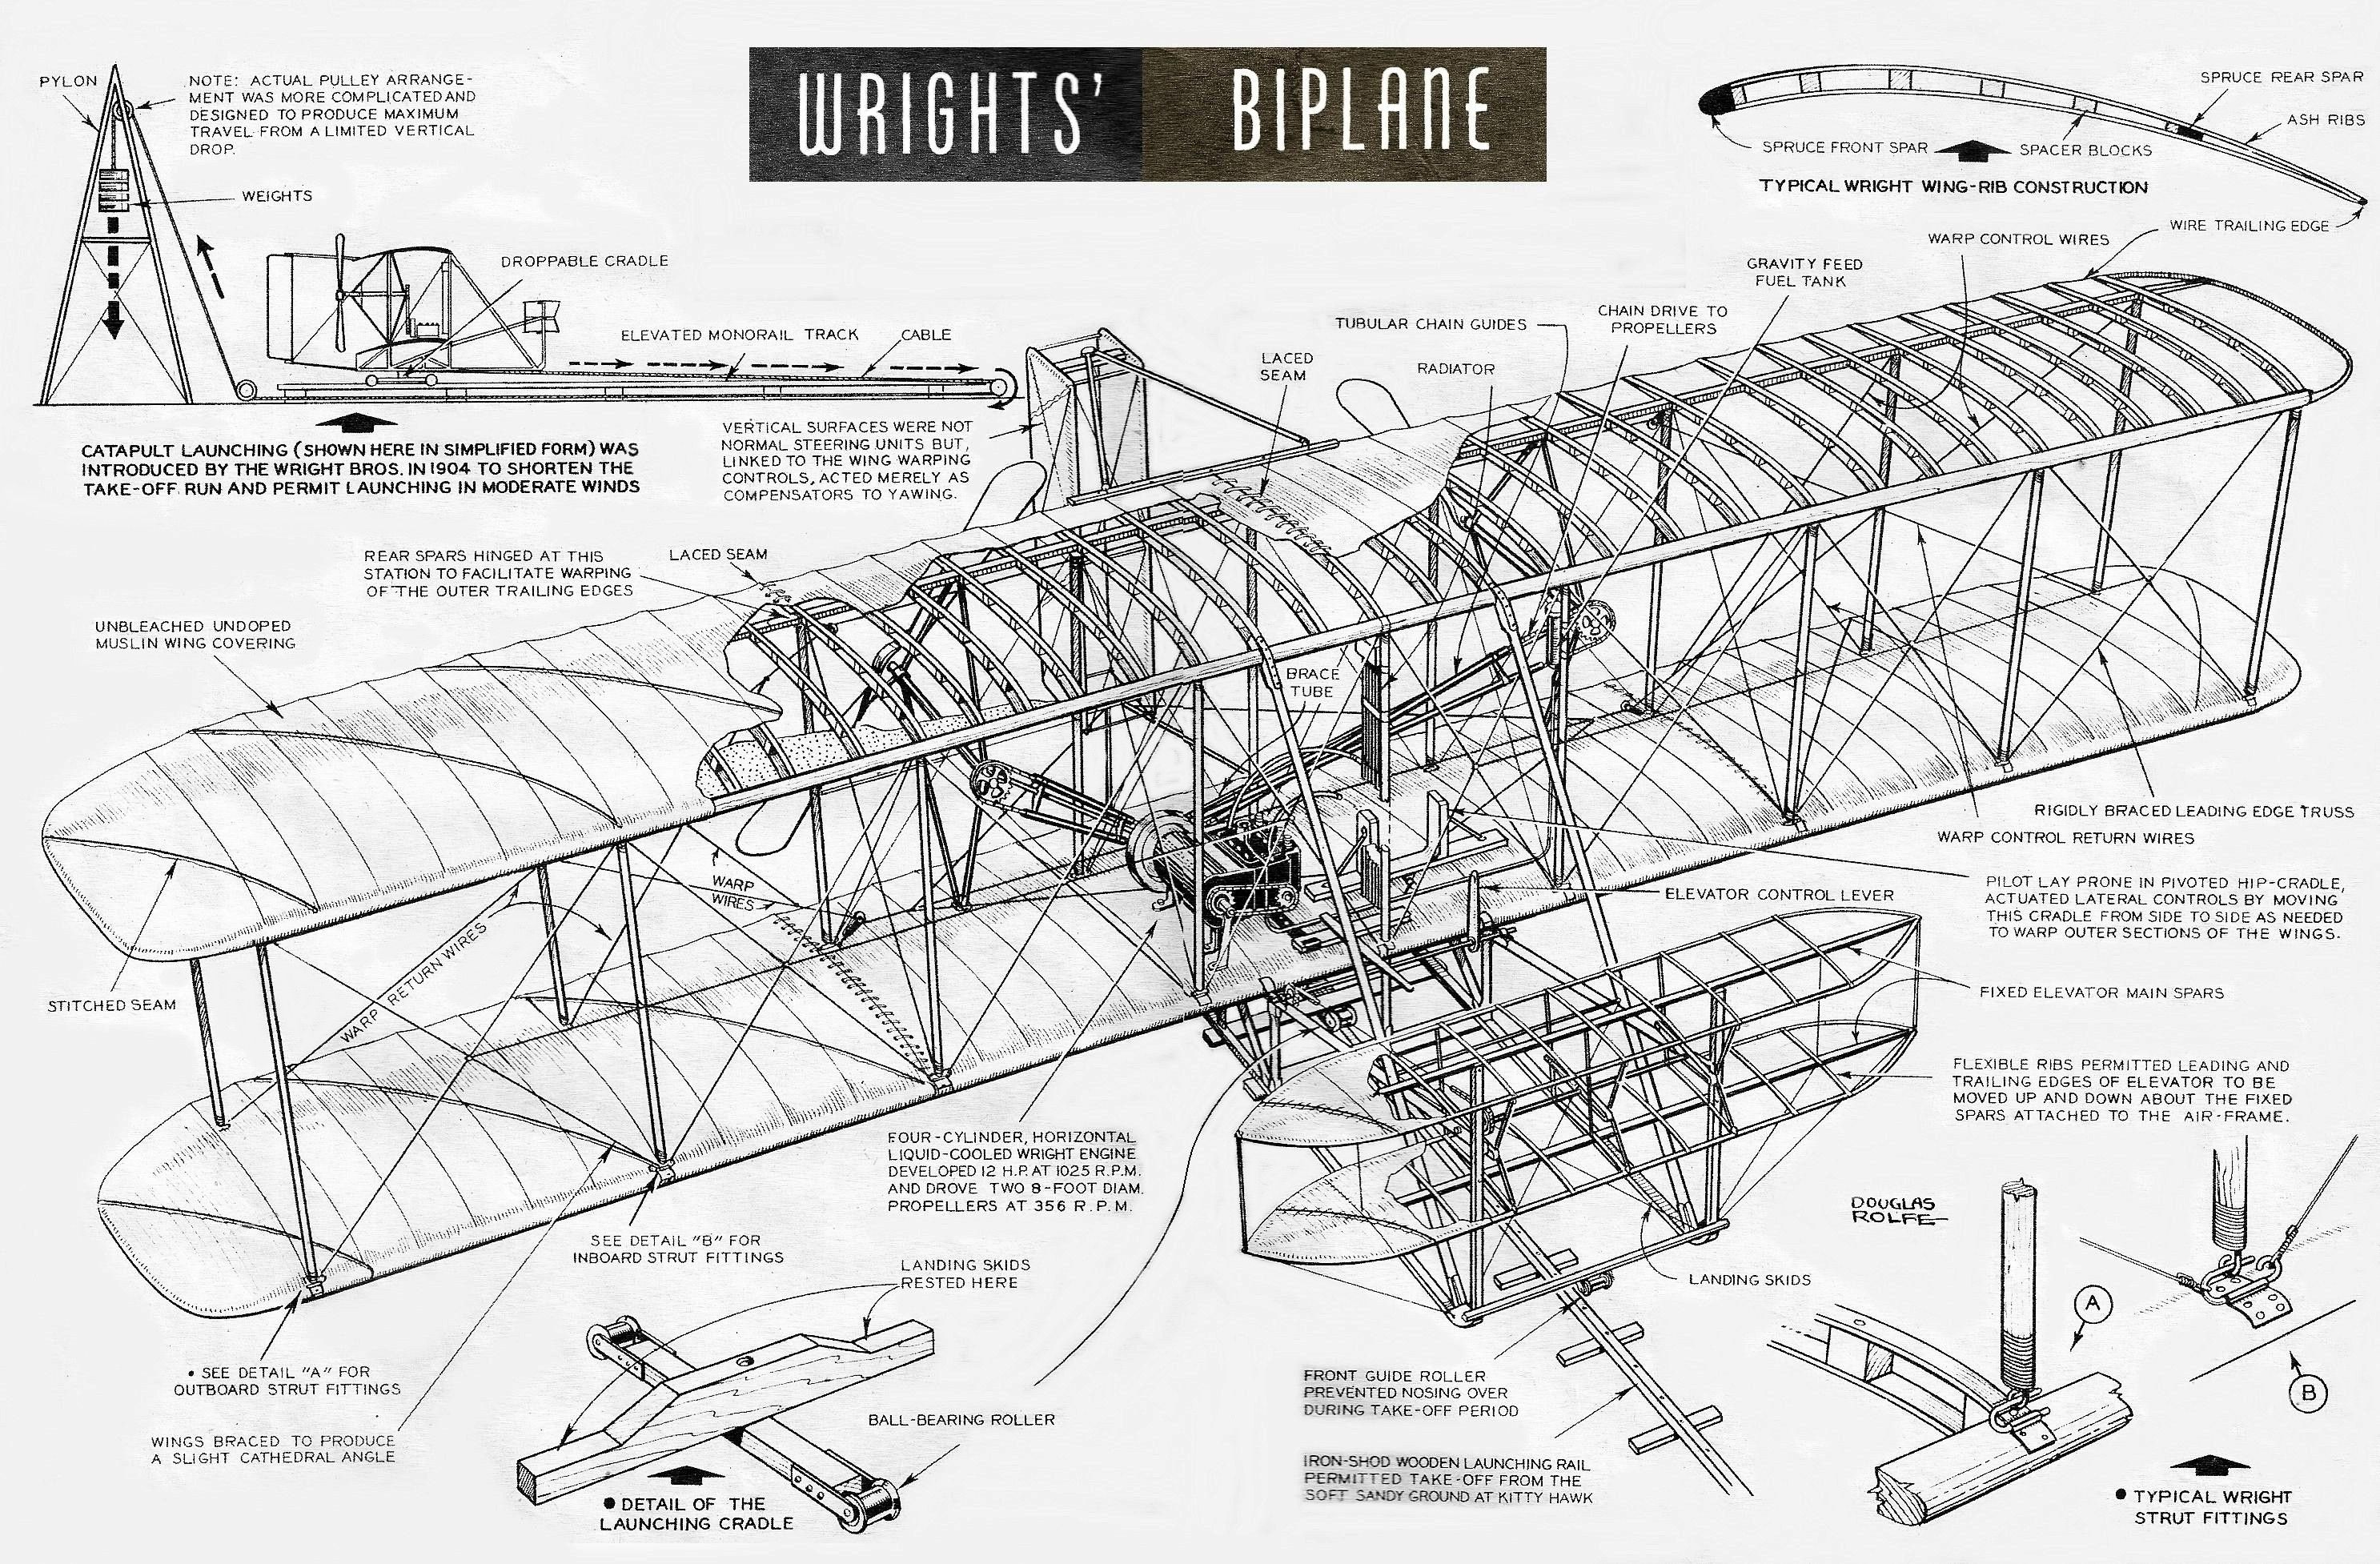 The Wright Brothers' biplane